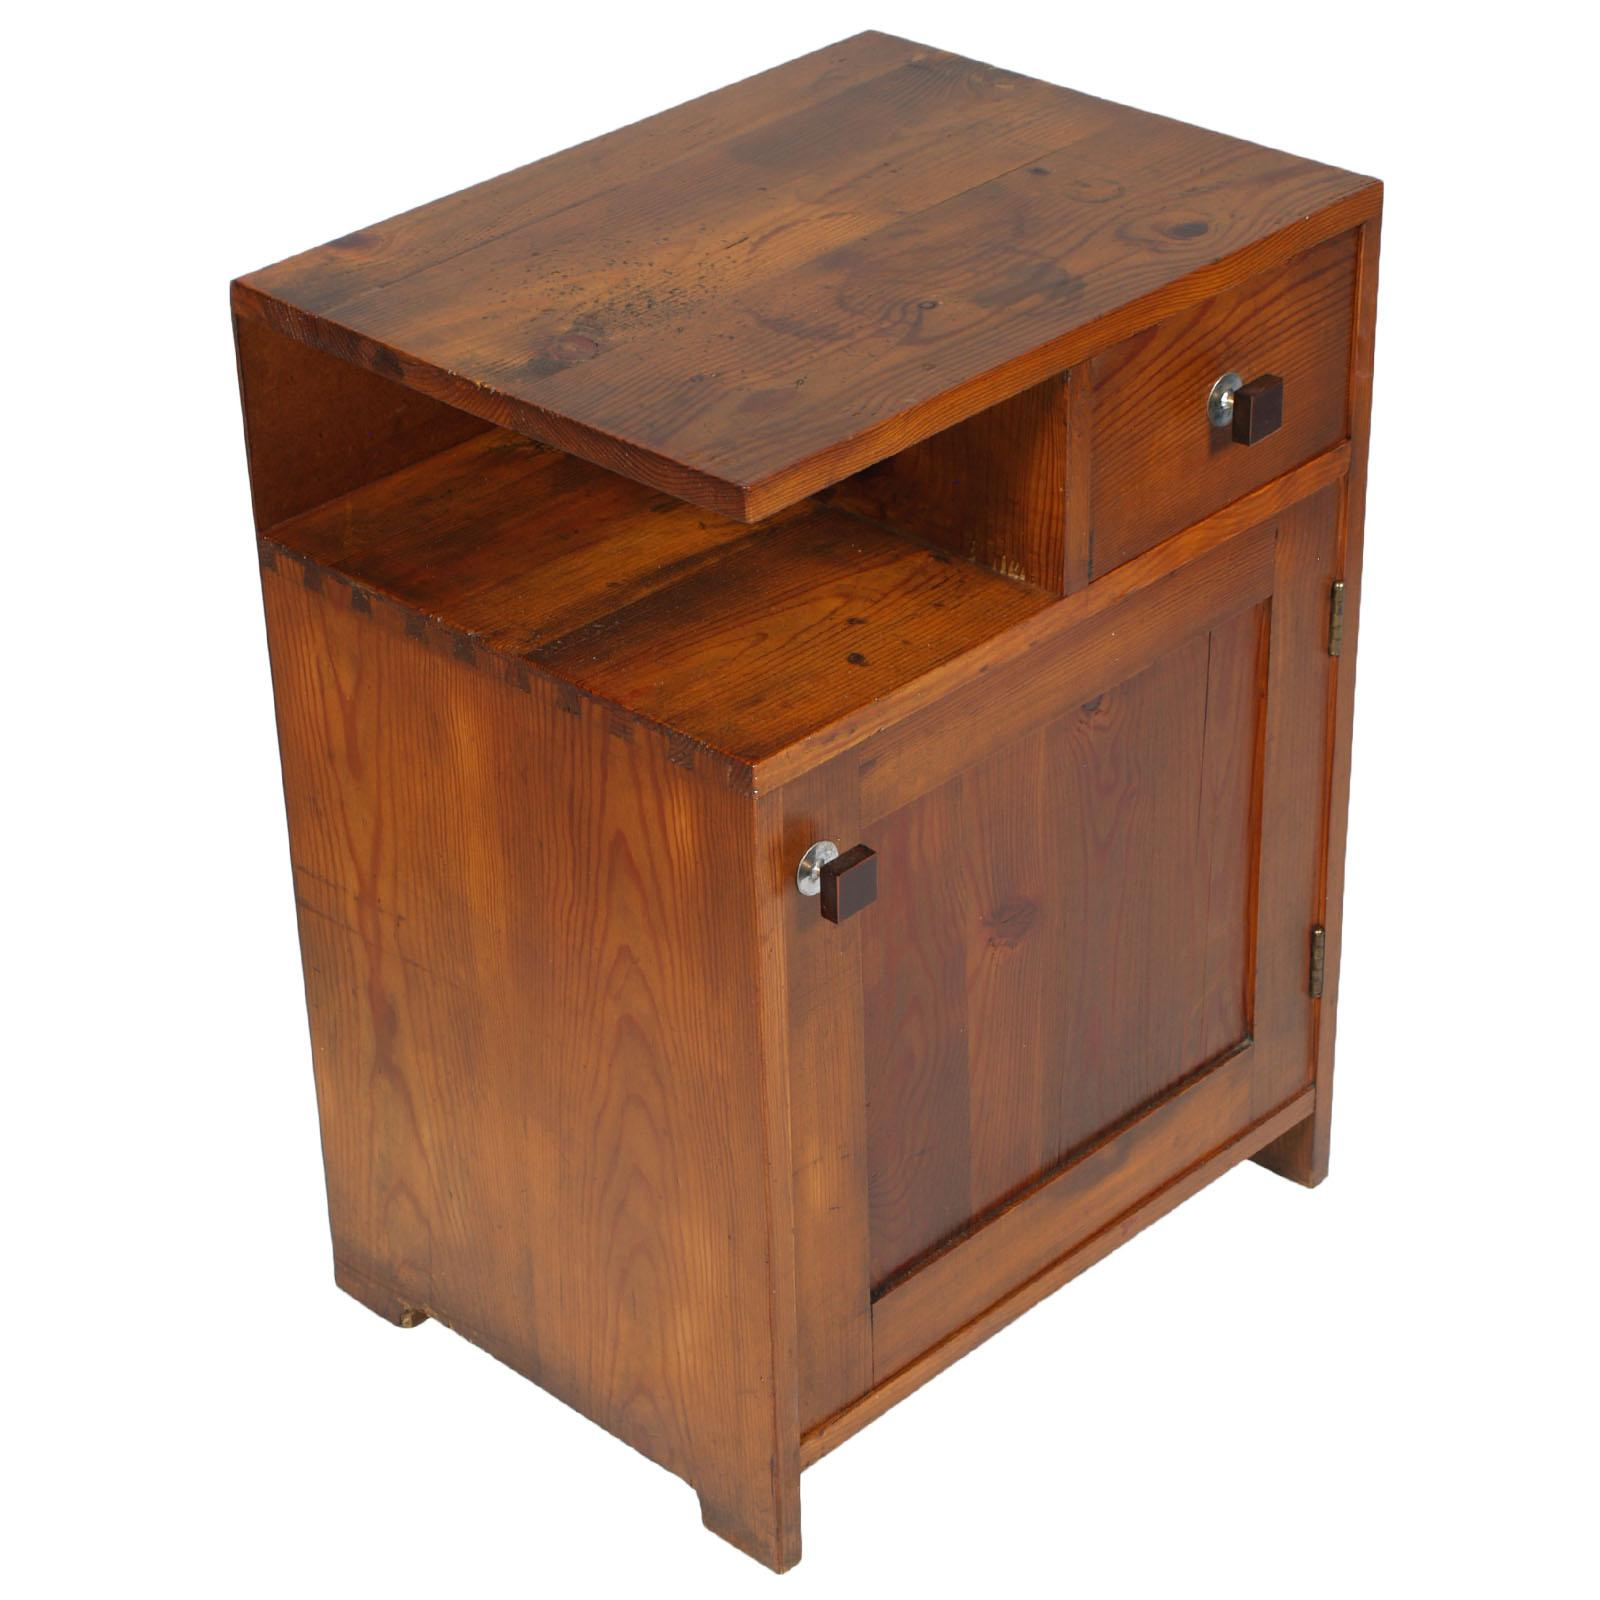 1920s Tyrolean Nightstand Art Deco in Larch,  Wax Polished